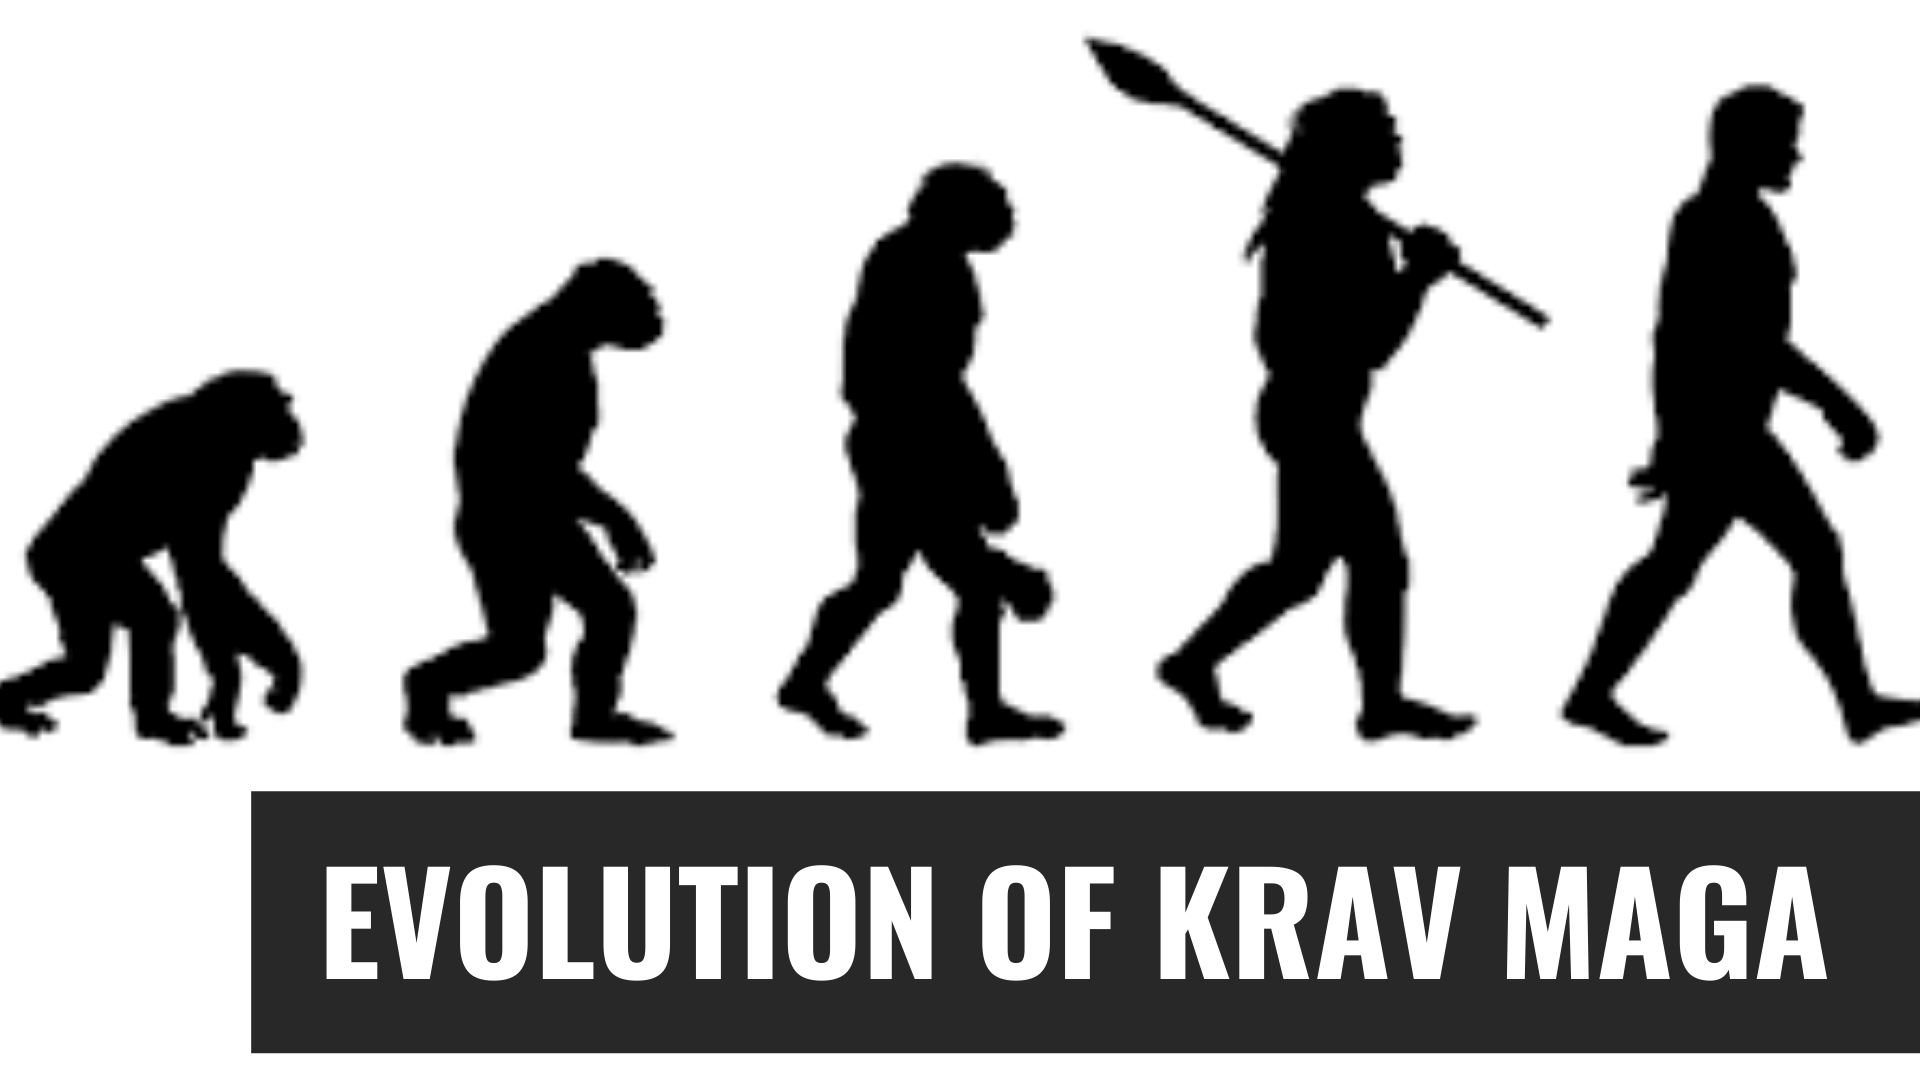 Evolution in Krav Maga